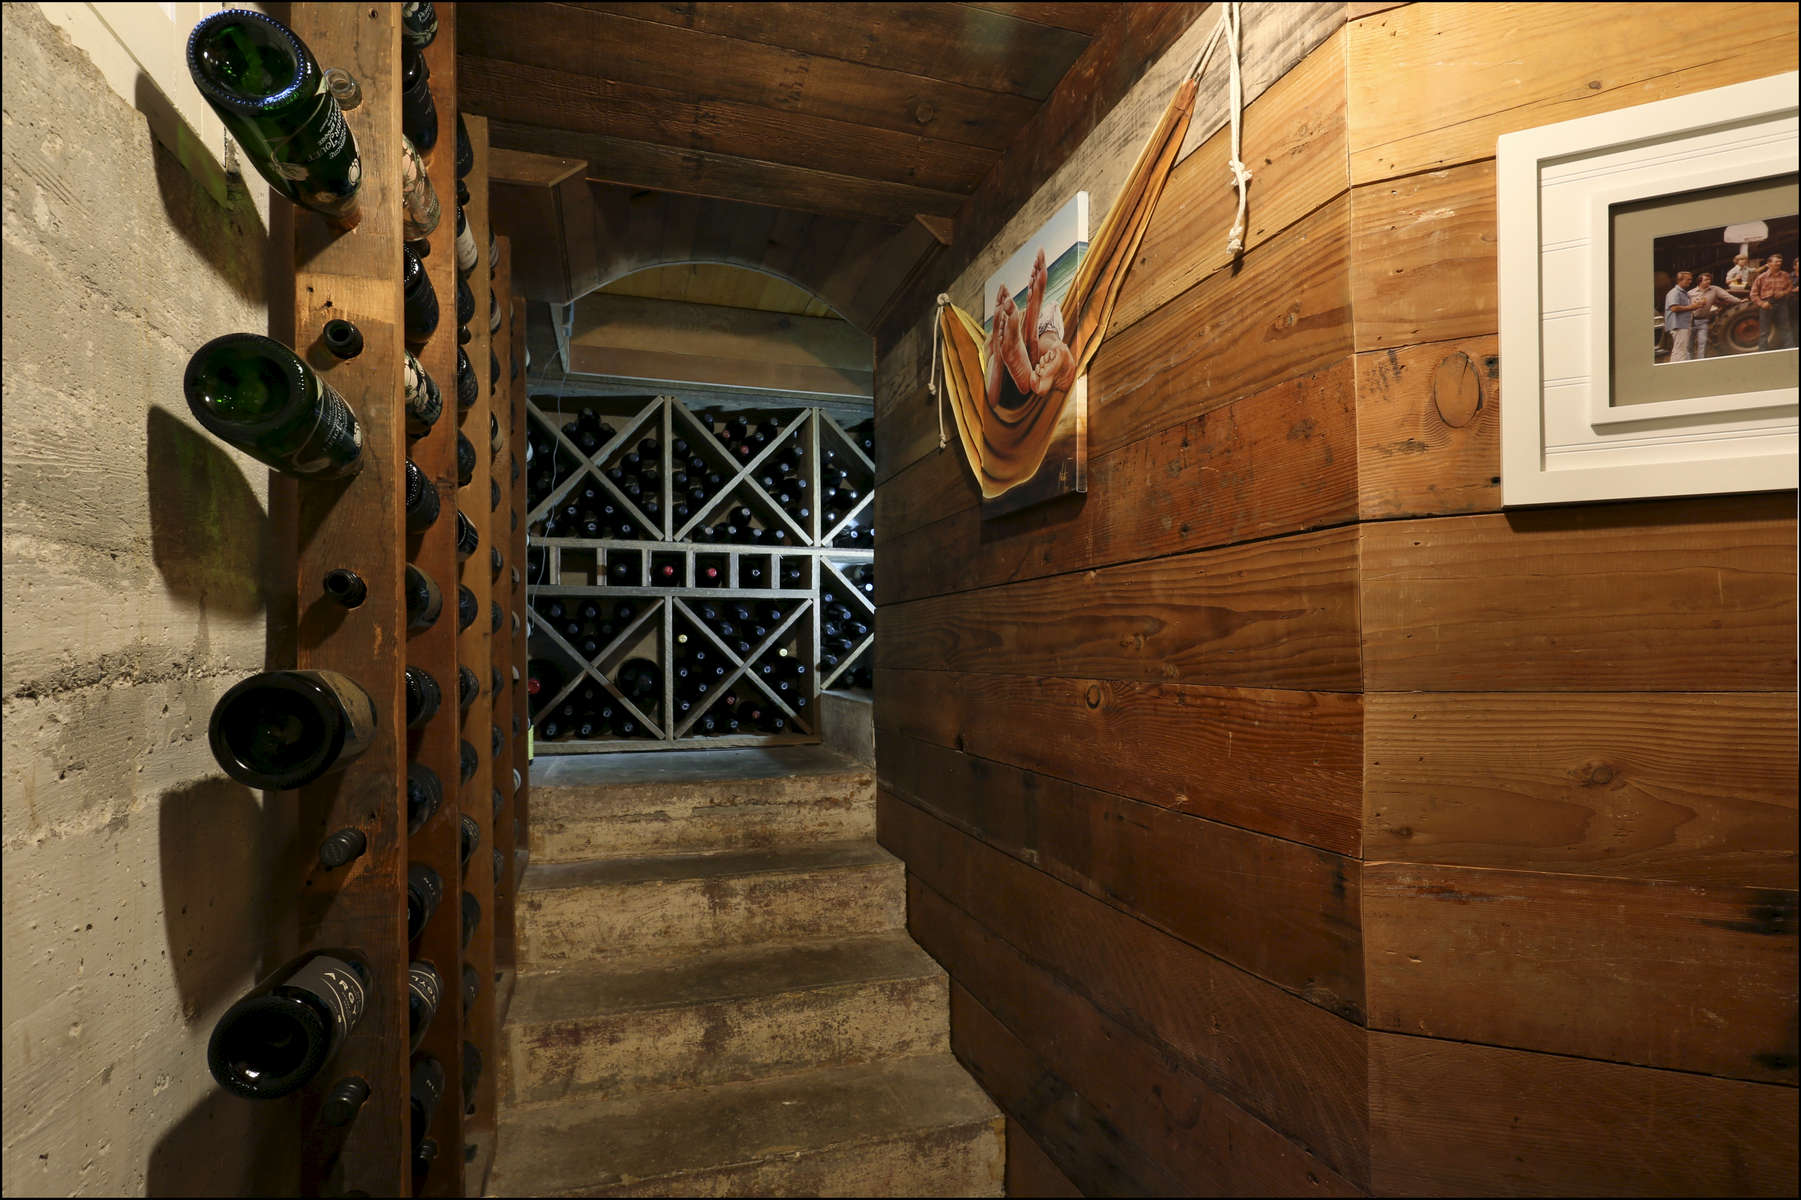 melissagary-h-1920-winecellar-a-pro--_1_